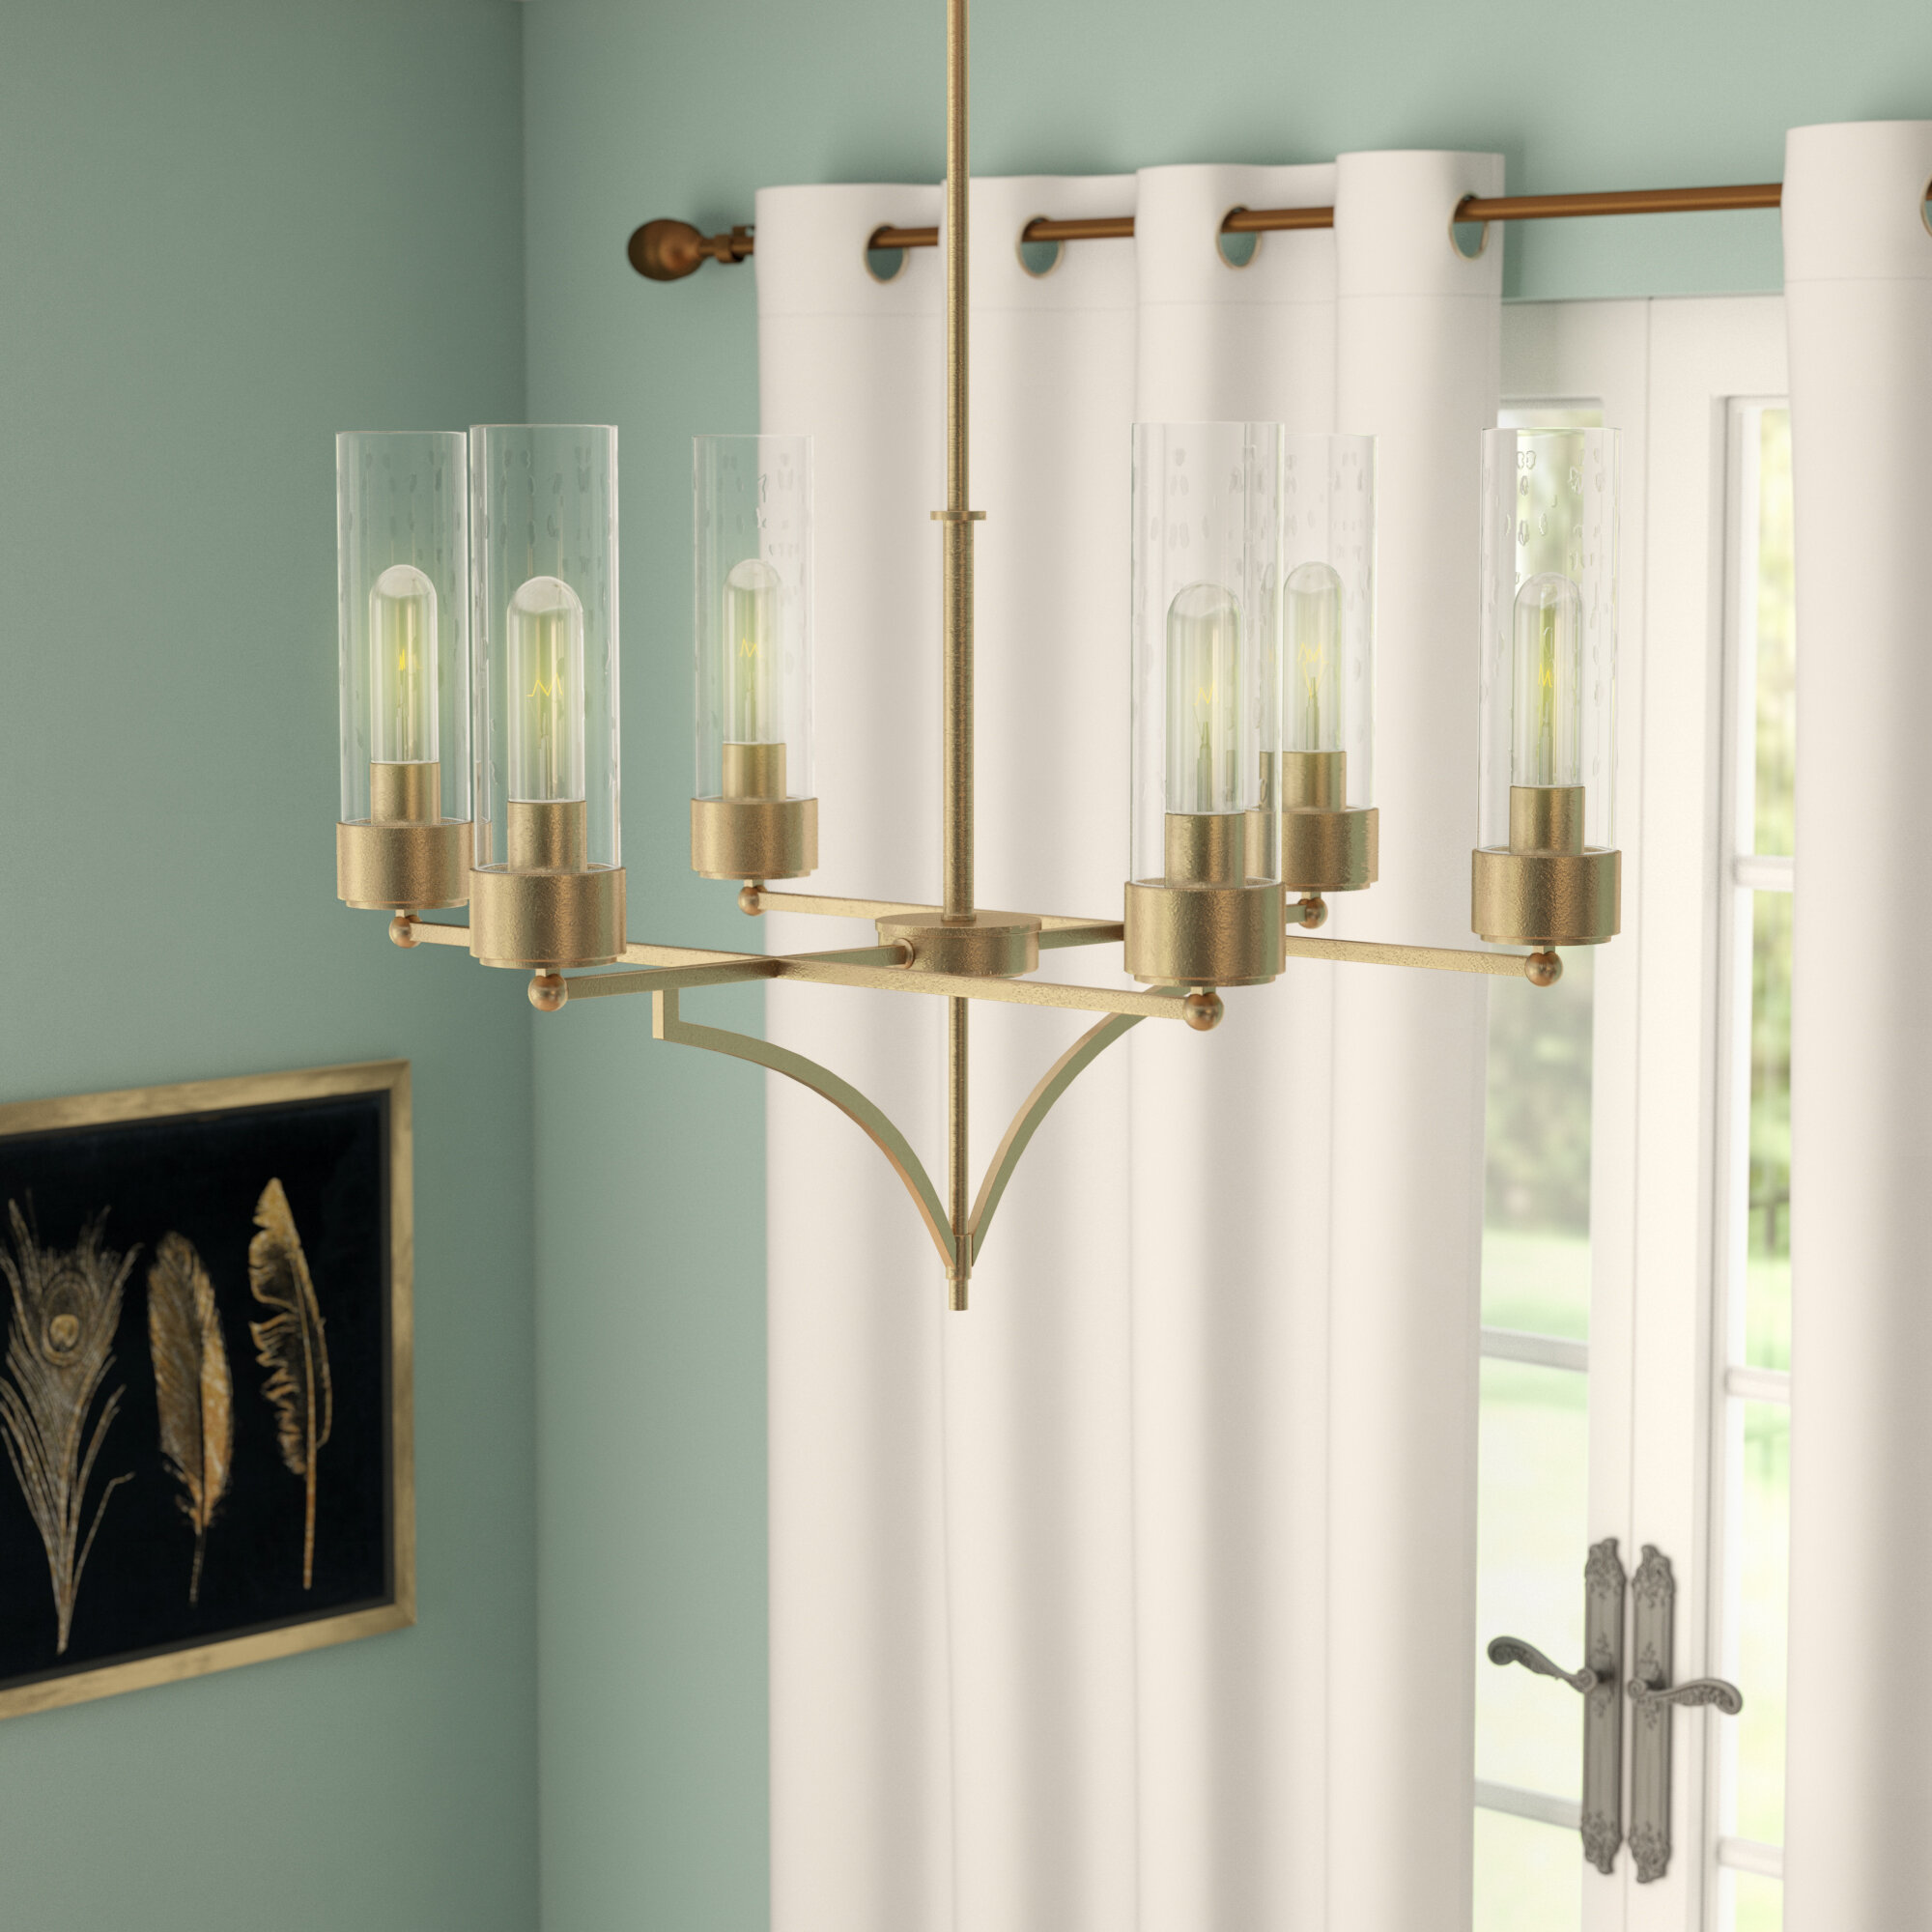 Everly quinn ozella 6 light shaded chandelier reviews wayfair